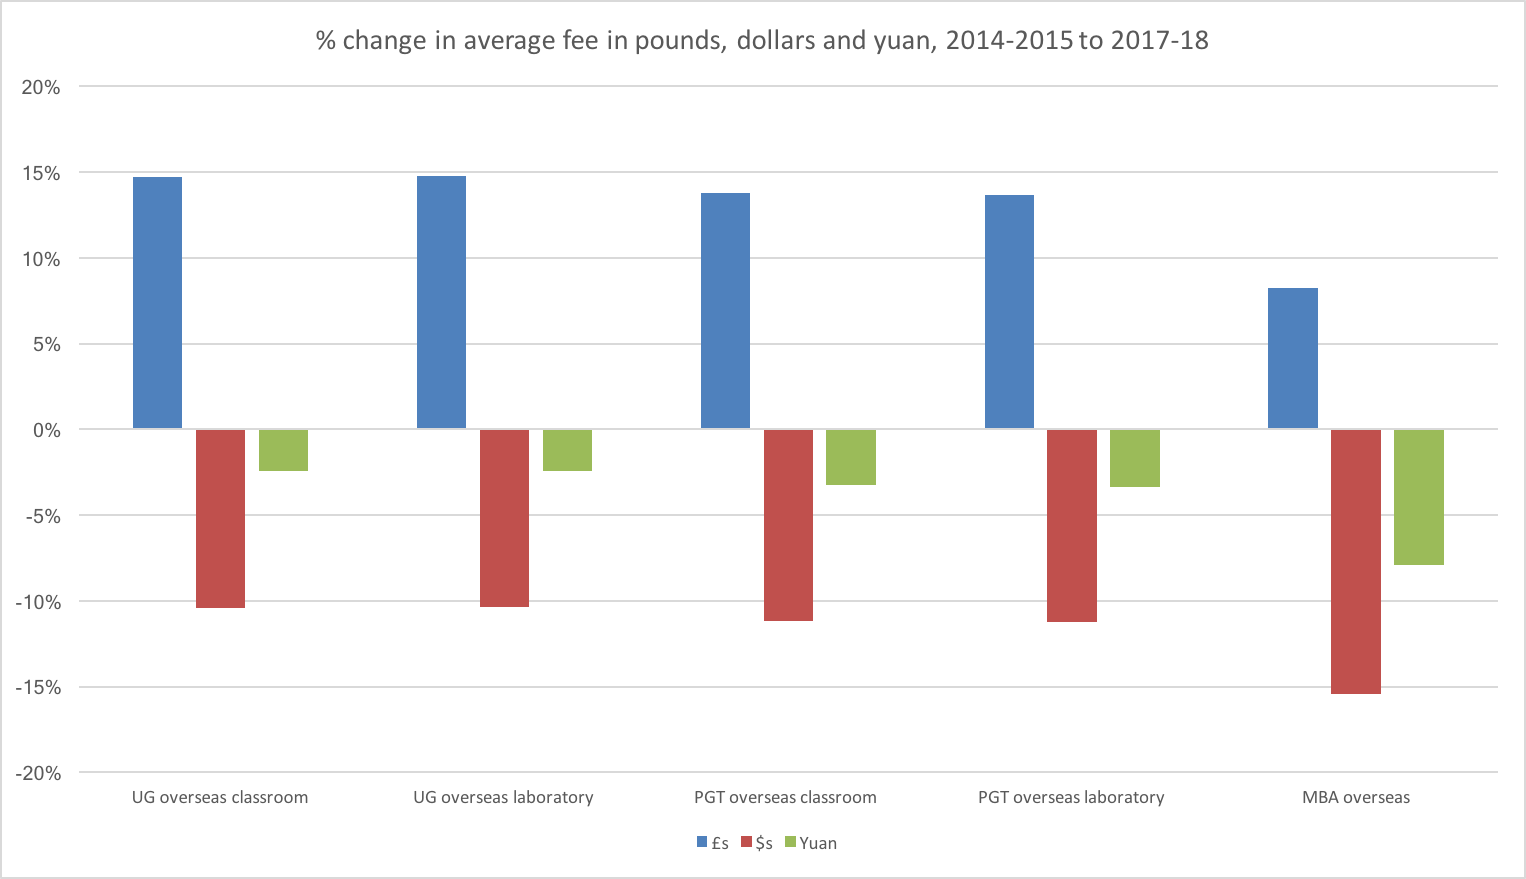 % change in average fee in pounds, dollars and yuan, 2014-2015 to 2017-18